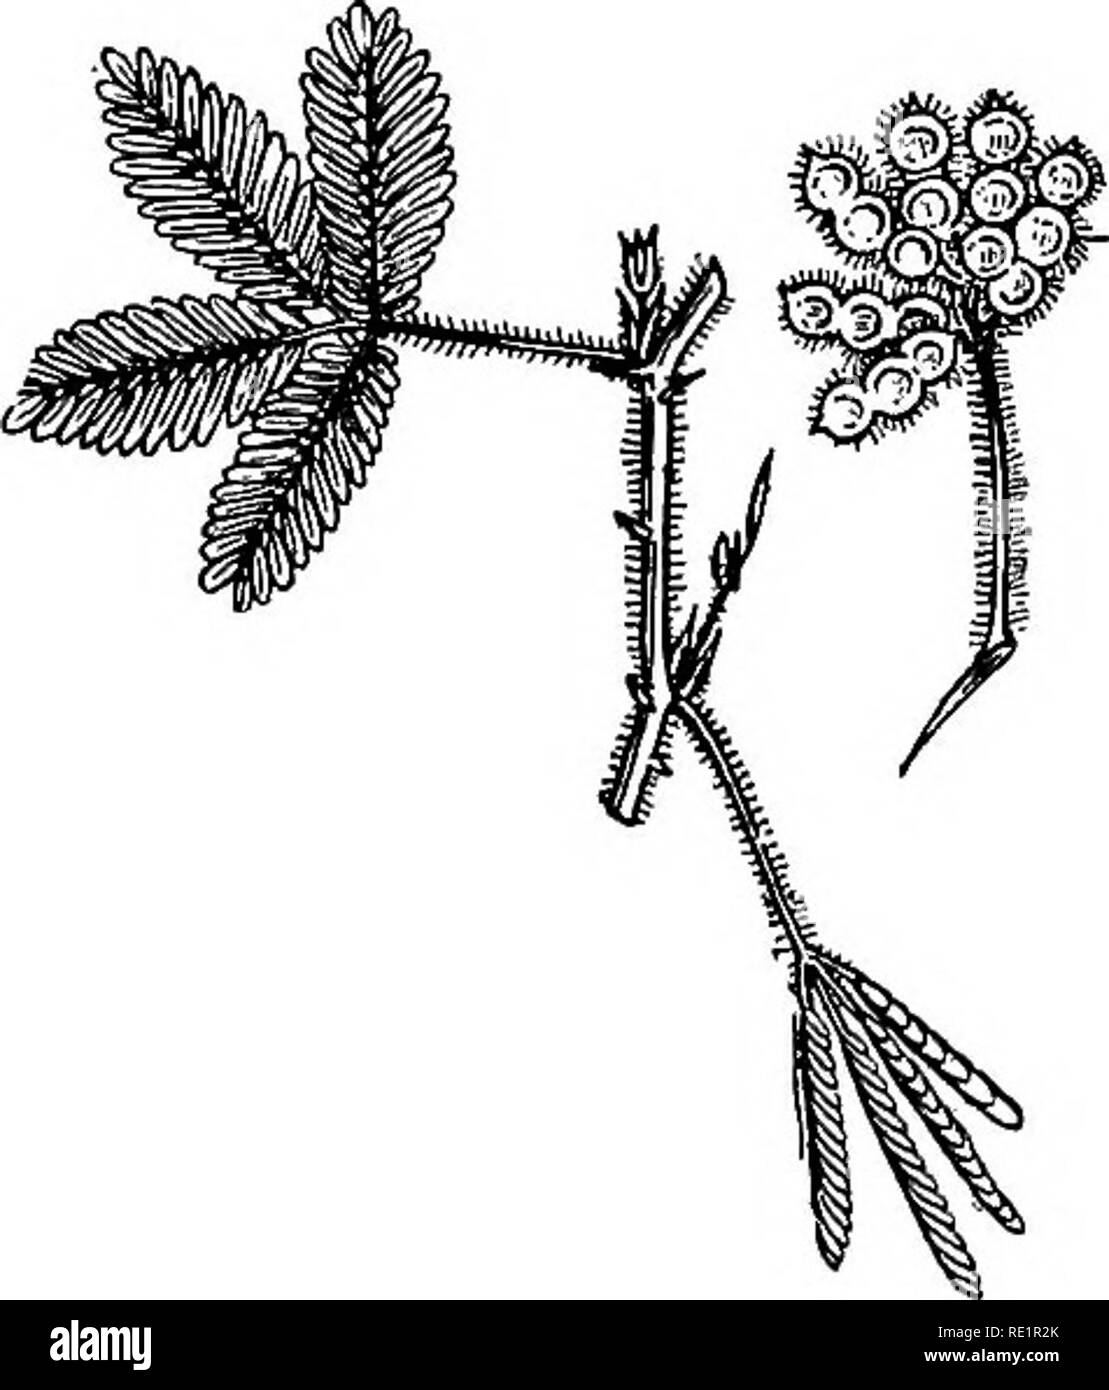 . A manual of Indian botany. Botany. 156 MORPHOLOGY. Fig. 138.- -Lajwabati {Mimosa pudica) a, lomentum. the ventral suture only, as in akanda (see fig. 123) and karabi; or occasionally by the dorsal suture only, as in Champa. A LEGUME is a fol- licle which dehisces by both the sutures, so that the pericarpdivides into two halvesorvalves as they are called, as in Pea (see fig. 91), moog, arhahar, shone, and kal-kasonda. In some legumes transverse spurious dissepiments are formed between the seeds, so that the cell- cavity is not continu- ous, but divided into one-seeded compartments, and the fr - Stock Image